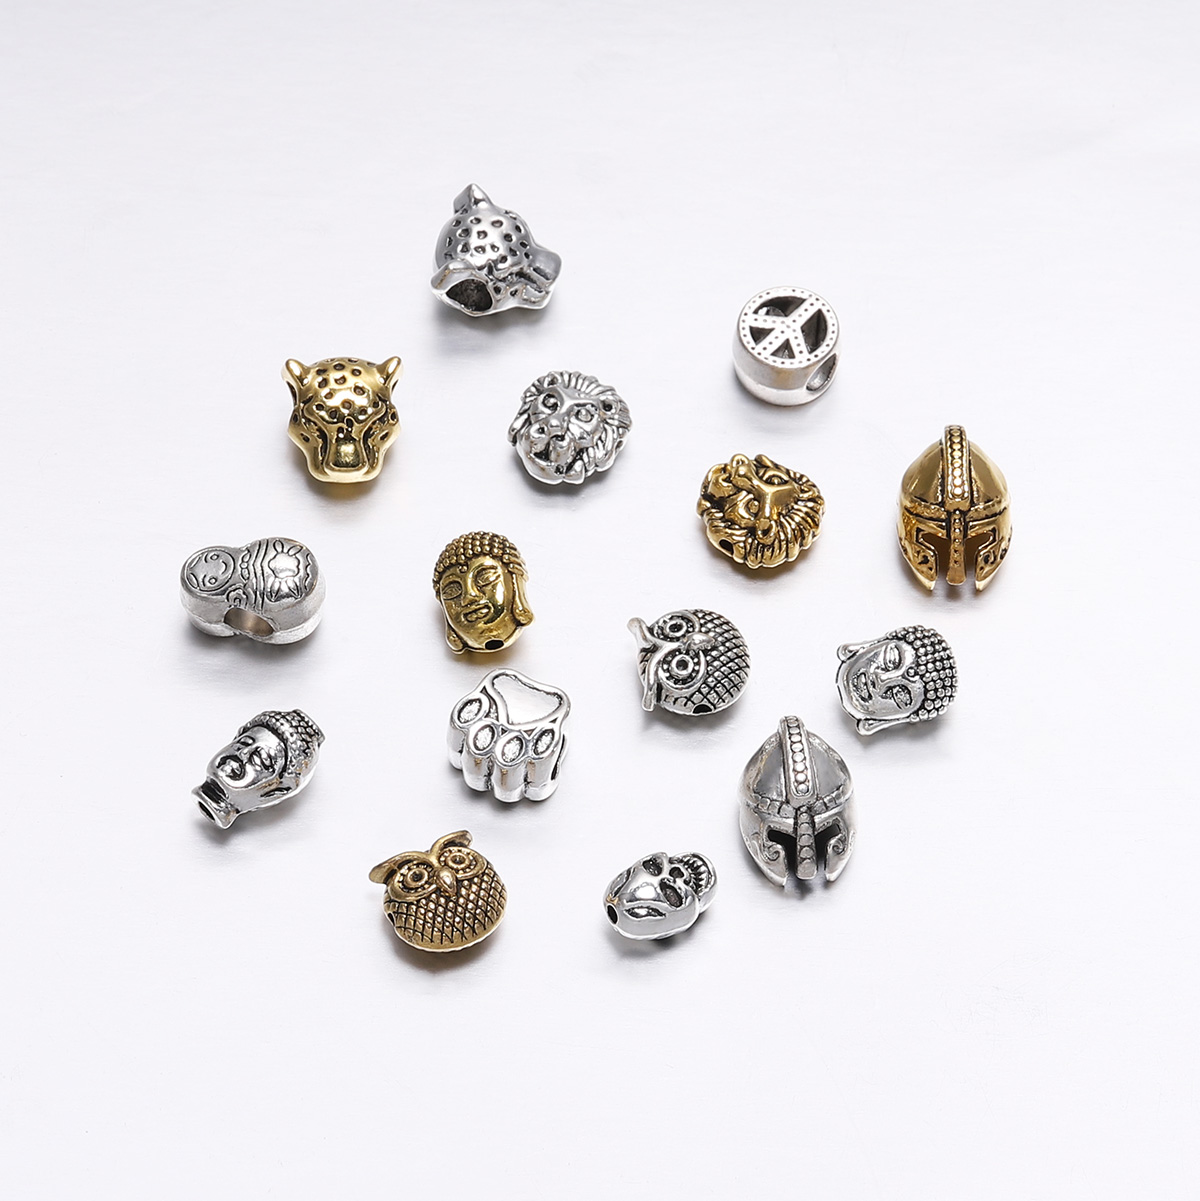 10pcs/lot Antique Gold/Silver Animal Shape Metal Lion Sparta Buddha Leopard Heads Spacer Bezels Beads Supplies For DIY Jewelry